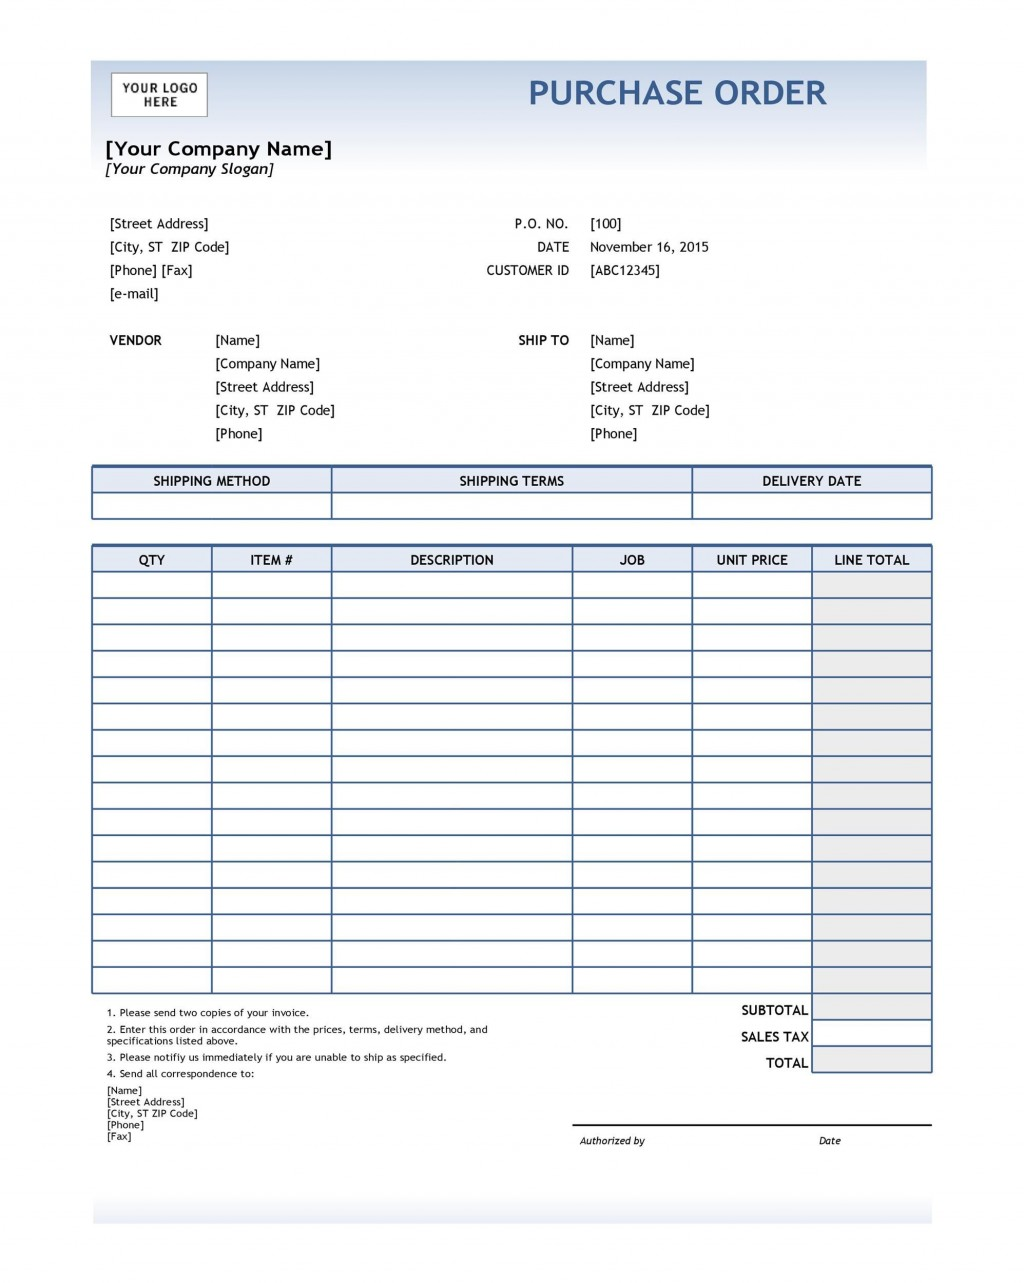 009 Wonderful Heavy Equipment Bill Of Sale Template Highest Clarity Large